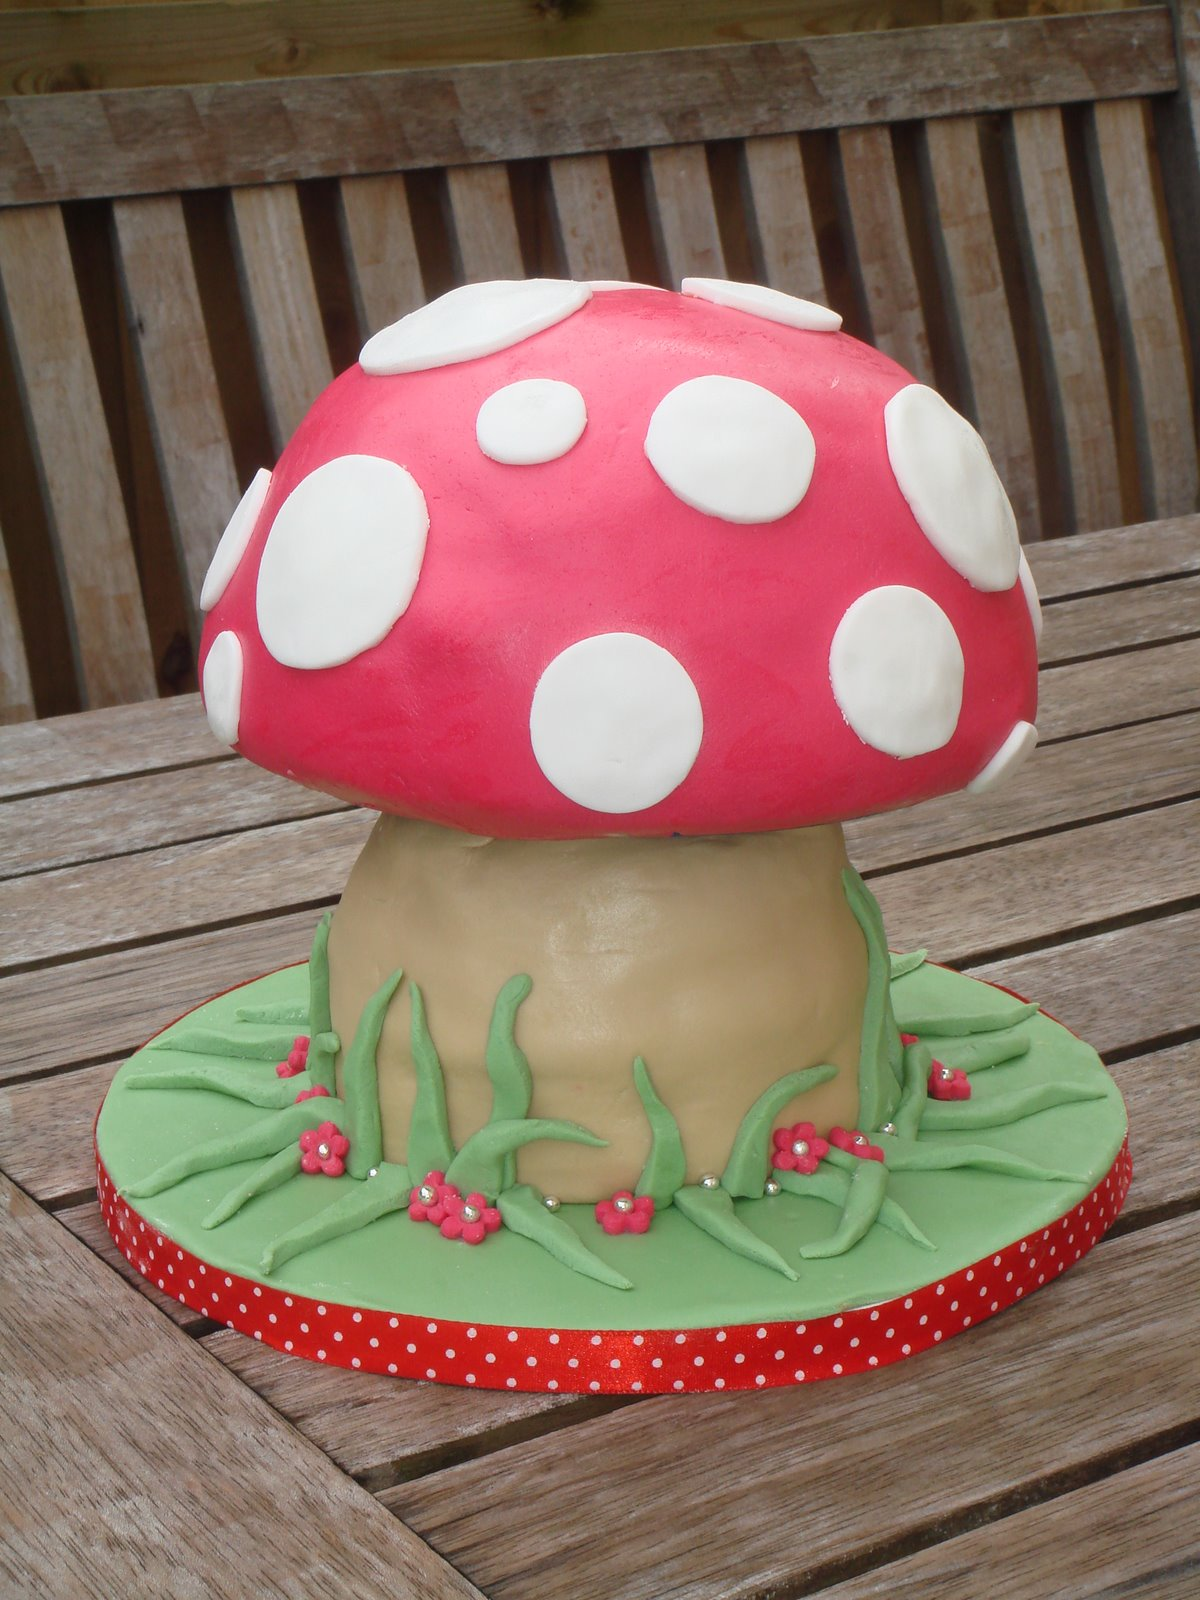 How To Decorate Toadstool Birthday Cake